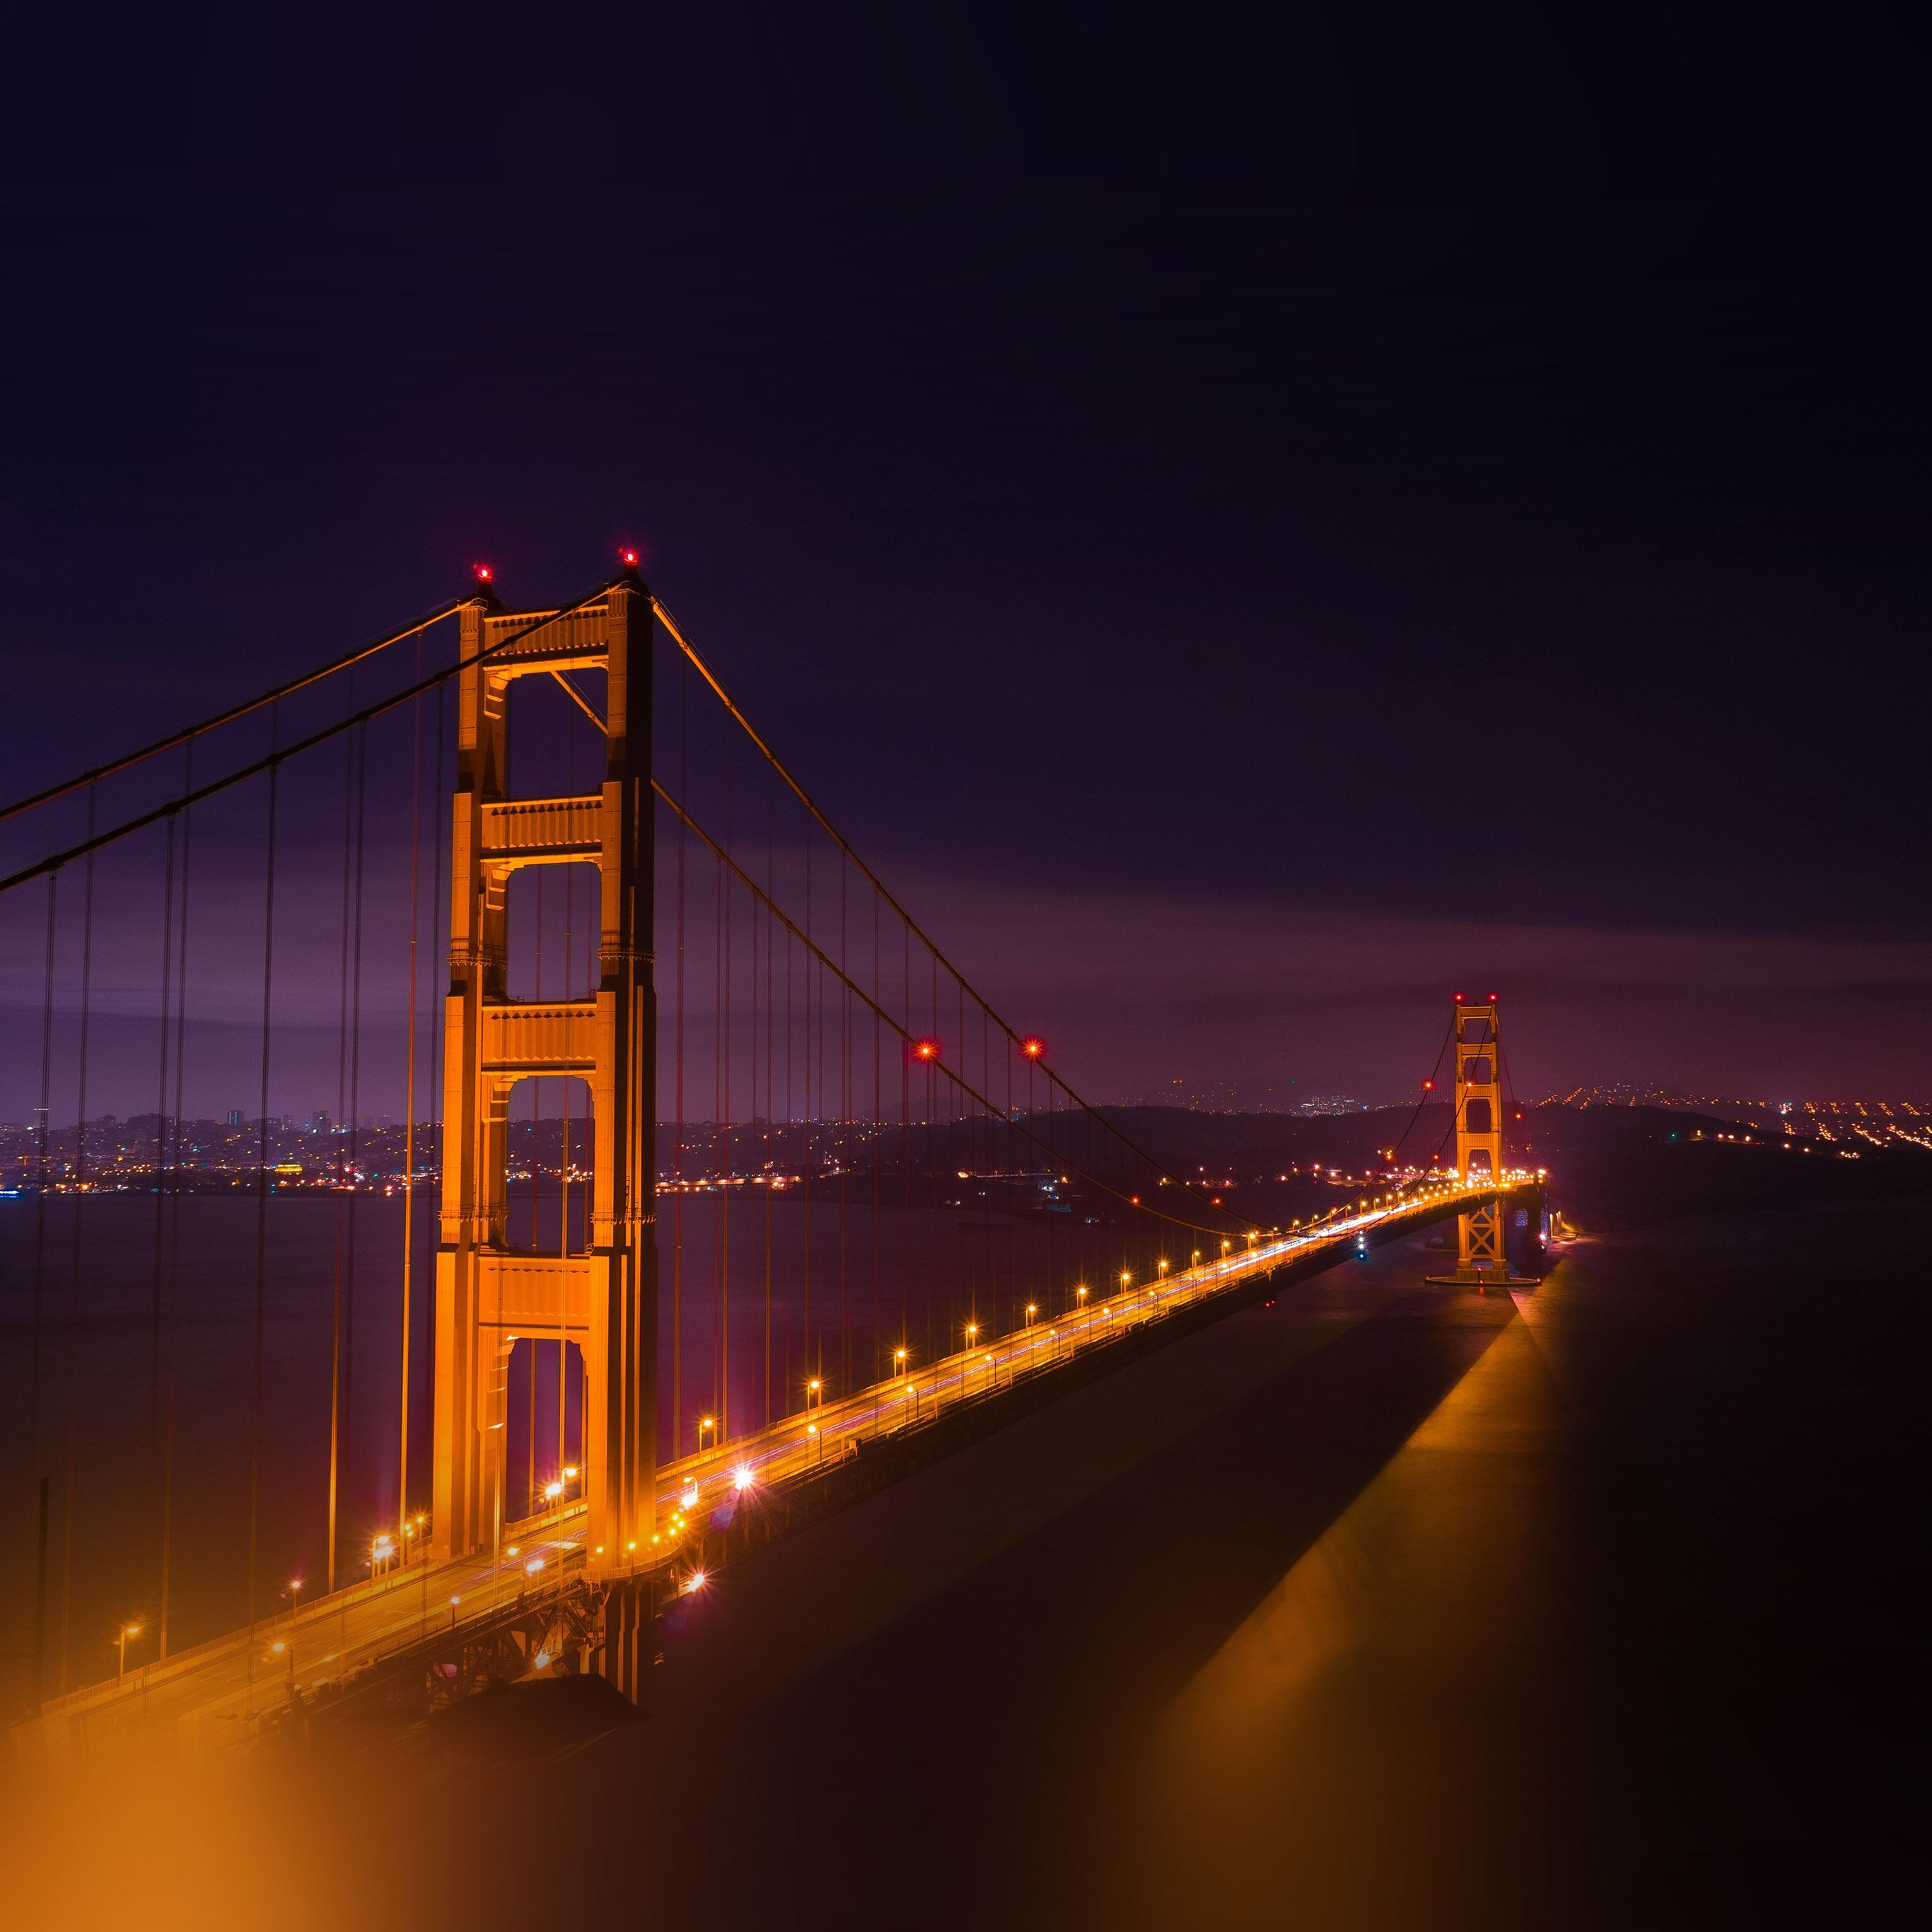 River golden bridge city night iPad Pro wallpaper